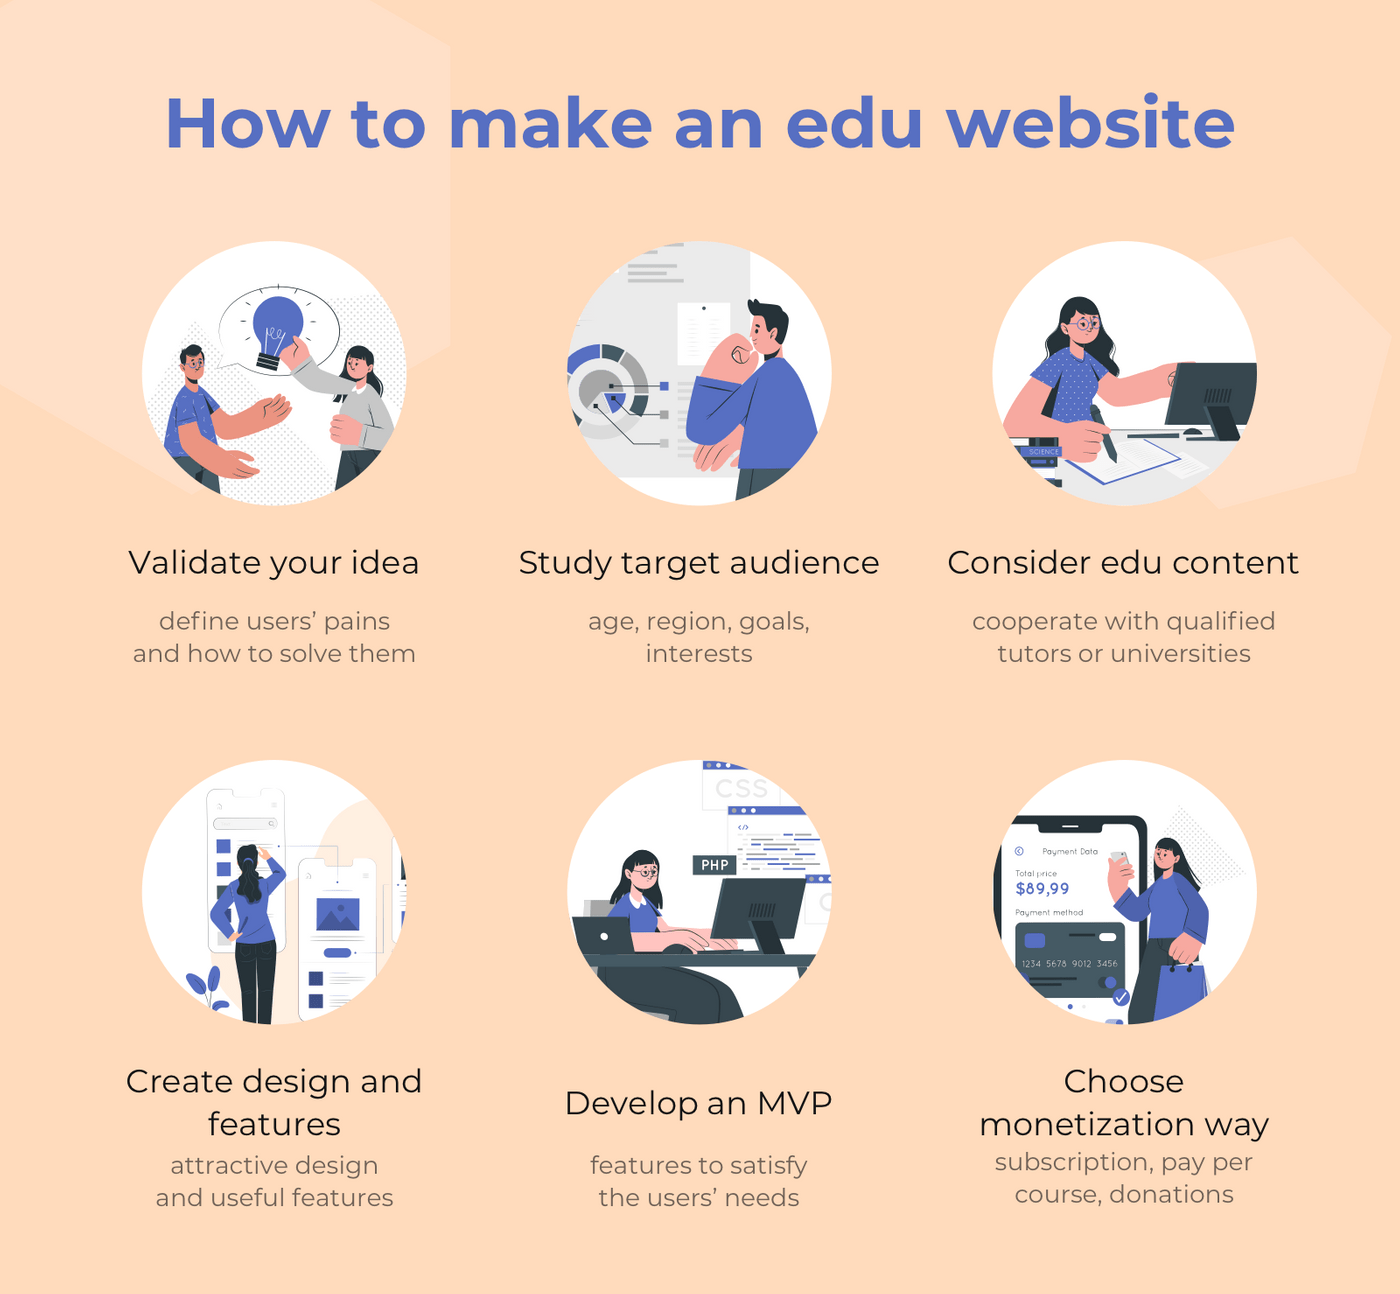 How to make an educational website